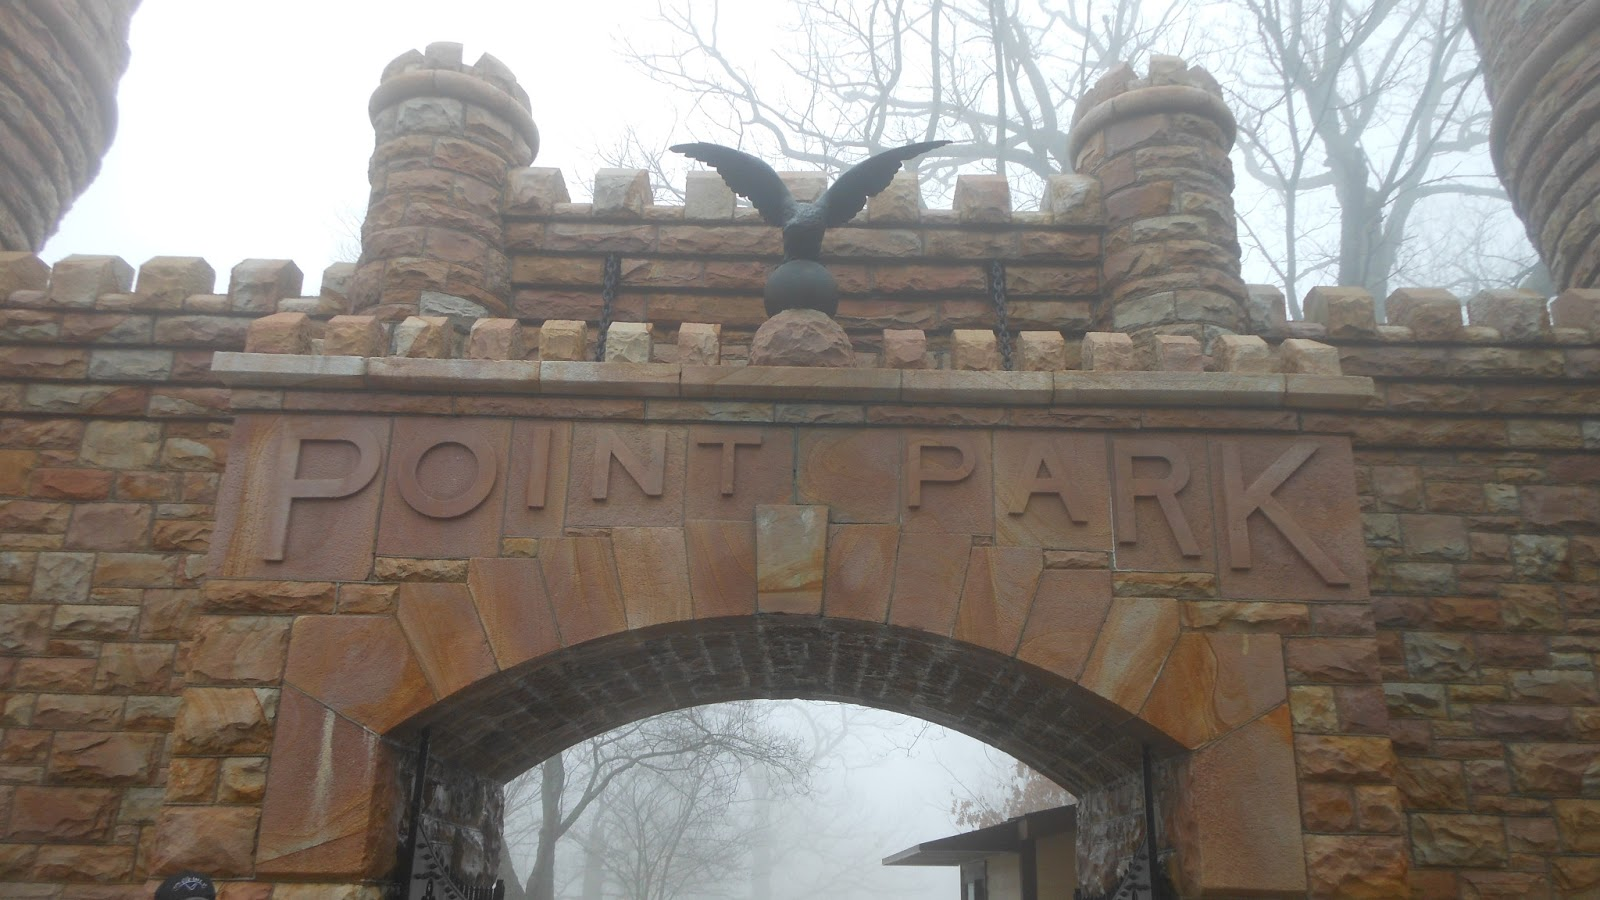 Point Park sign